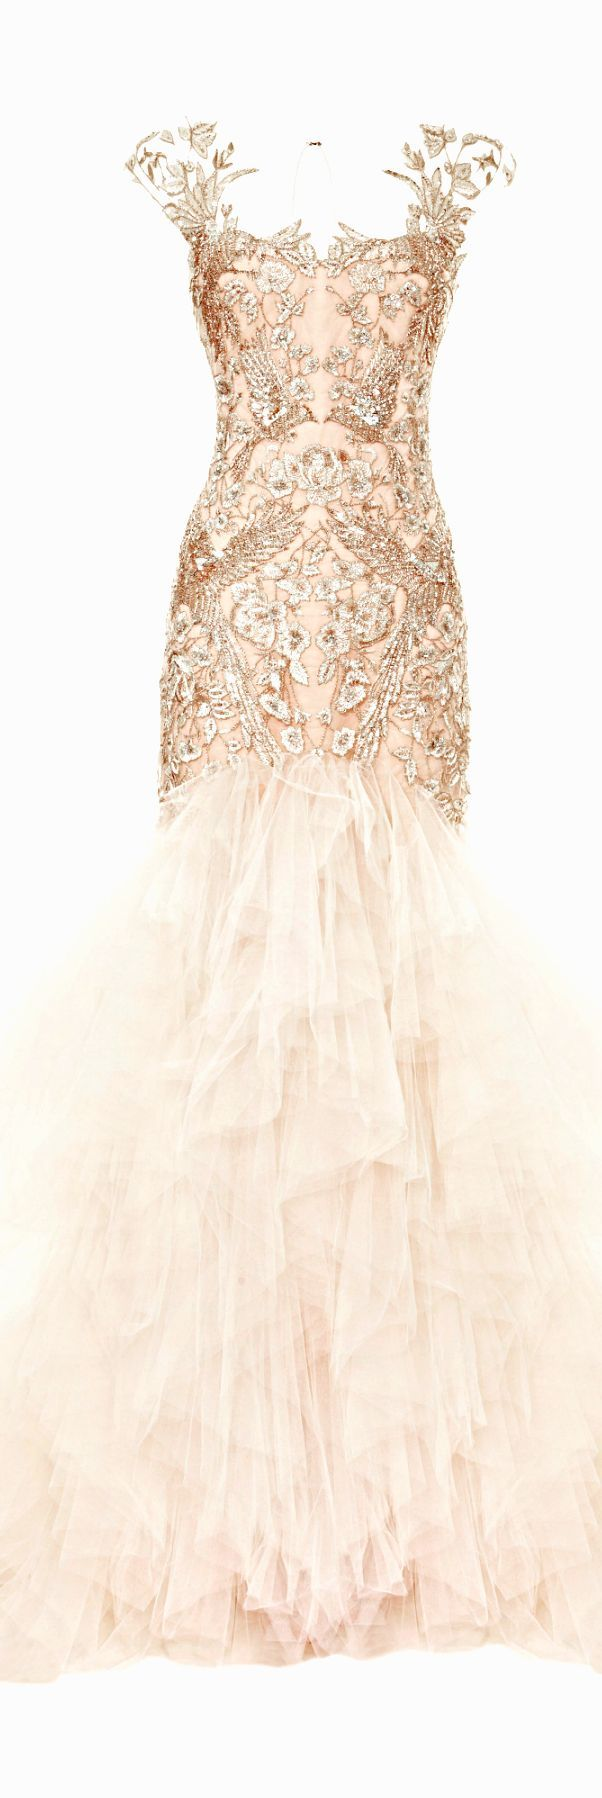 (via Marchesa SS 2014 | ❤ Rose Gold ❤) stunning embellished gown. What a gorgeous wedding dress this would make...just SAYIN